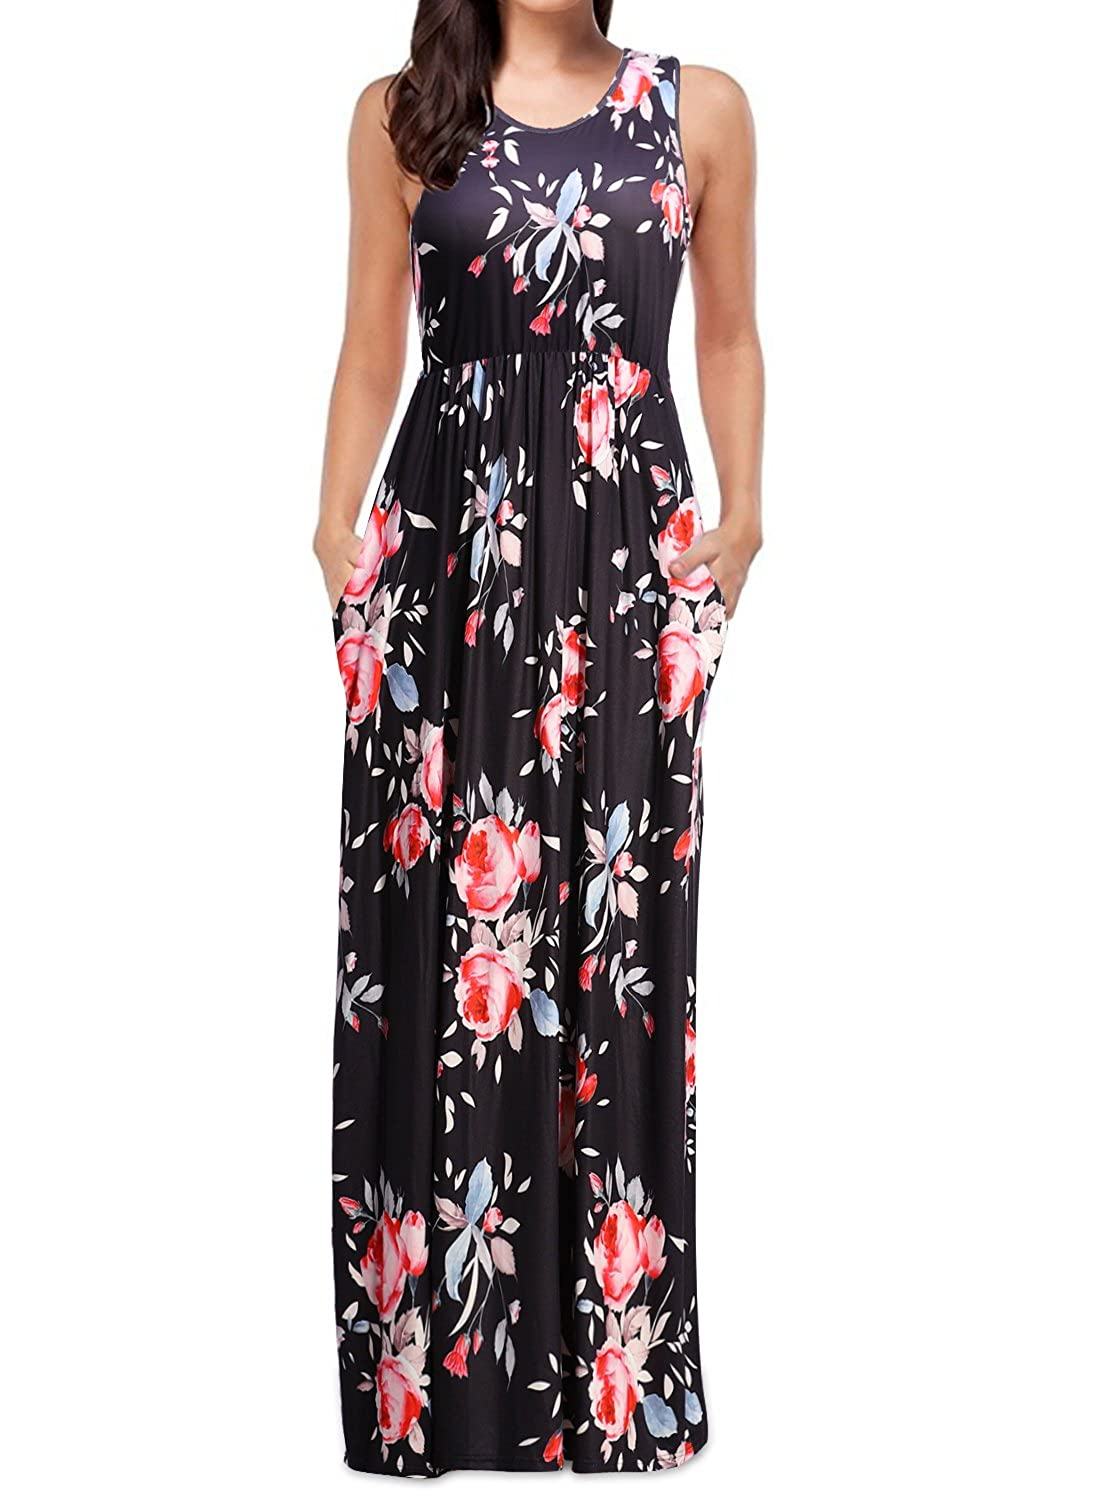 489c463f1e4 Features  gorgeous floral print maxi dress with sleeveless tank top